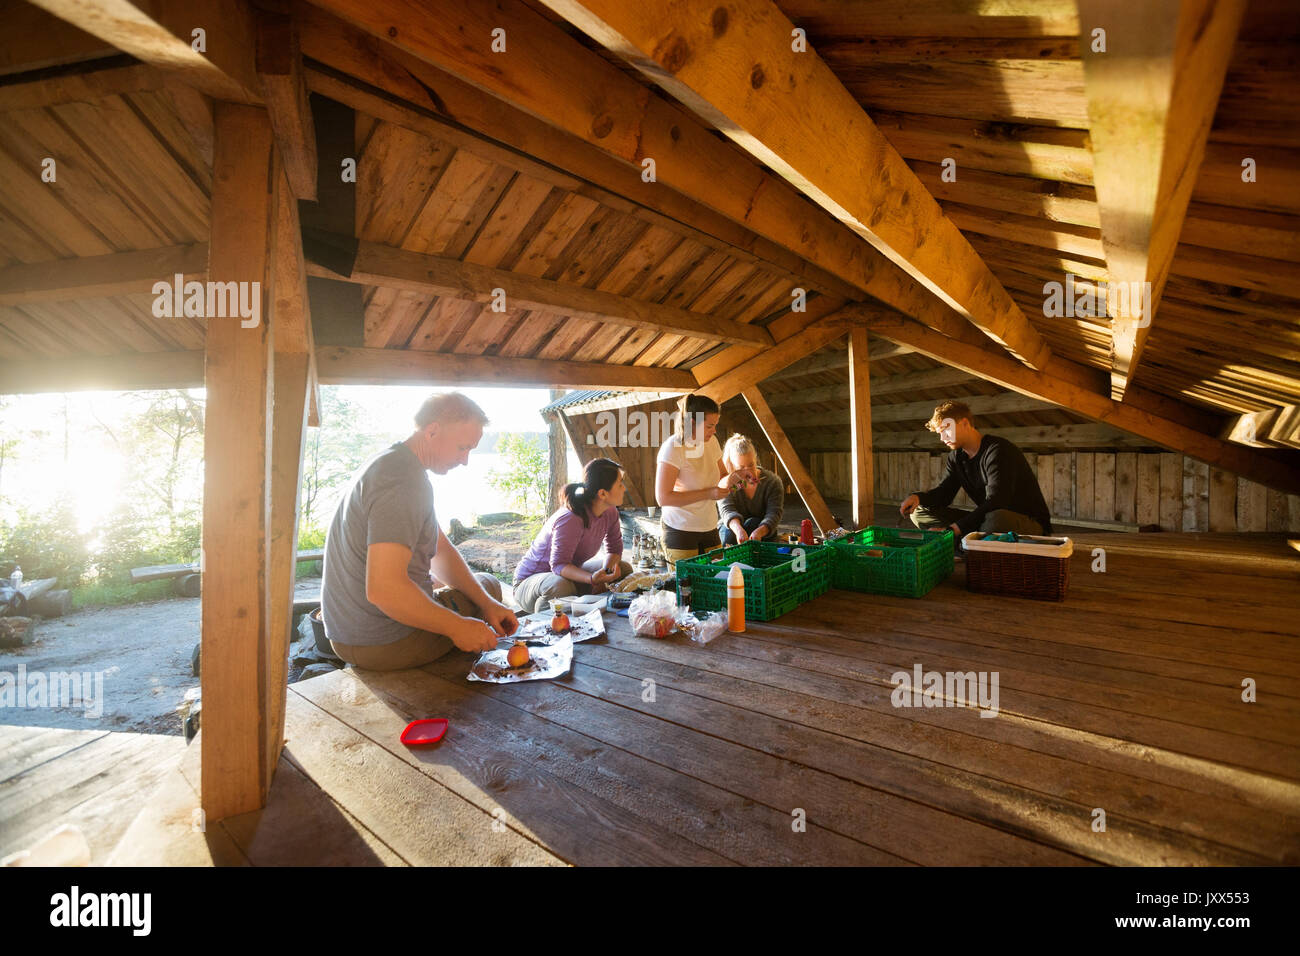 Business People Preparing Food In Shed At Forest - Stock Image